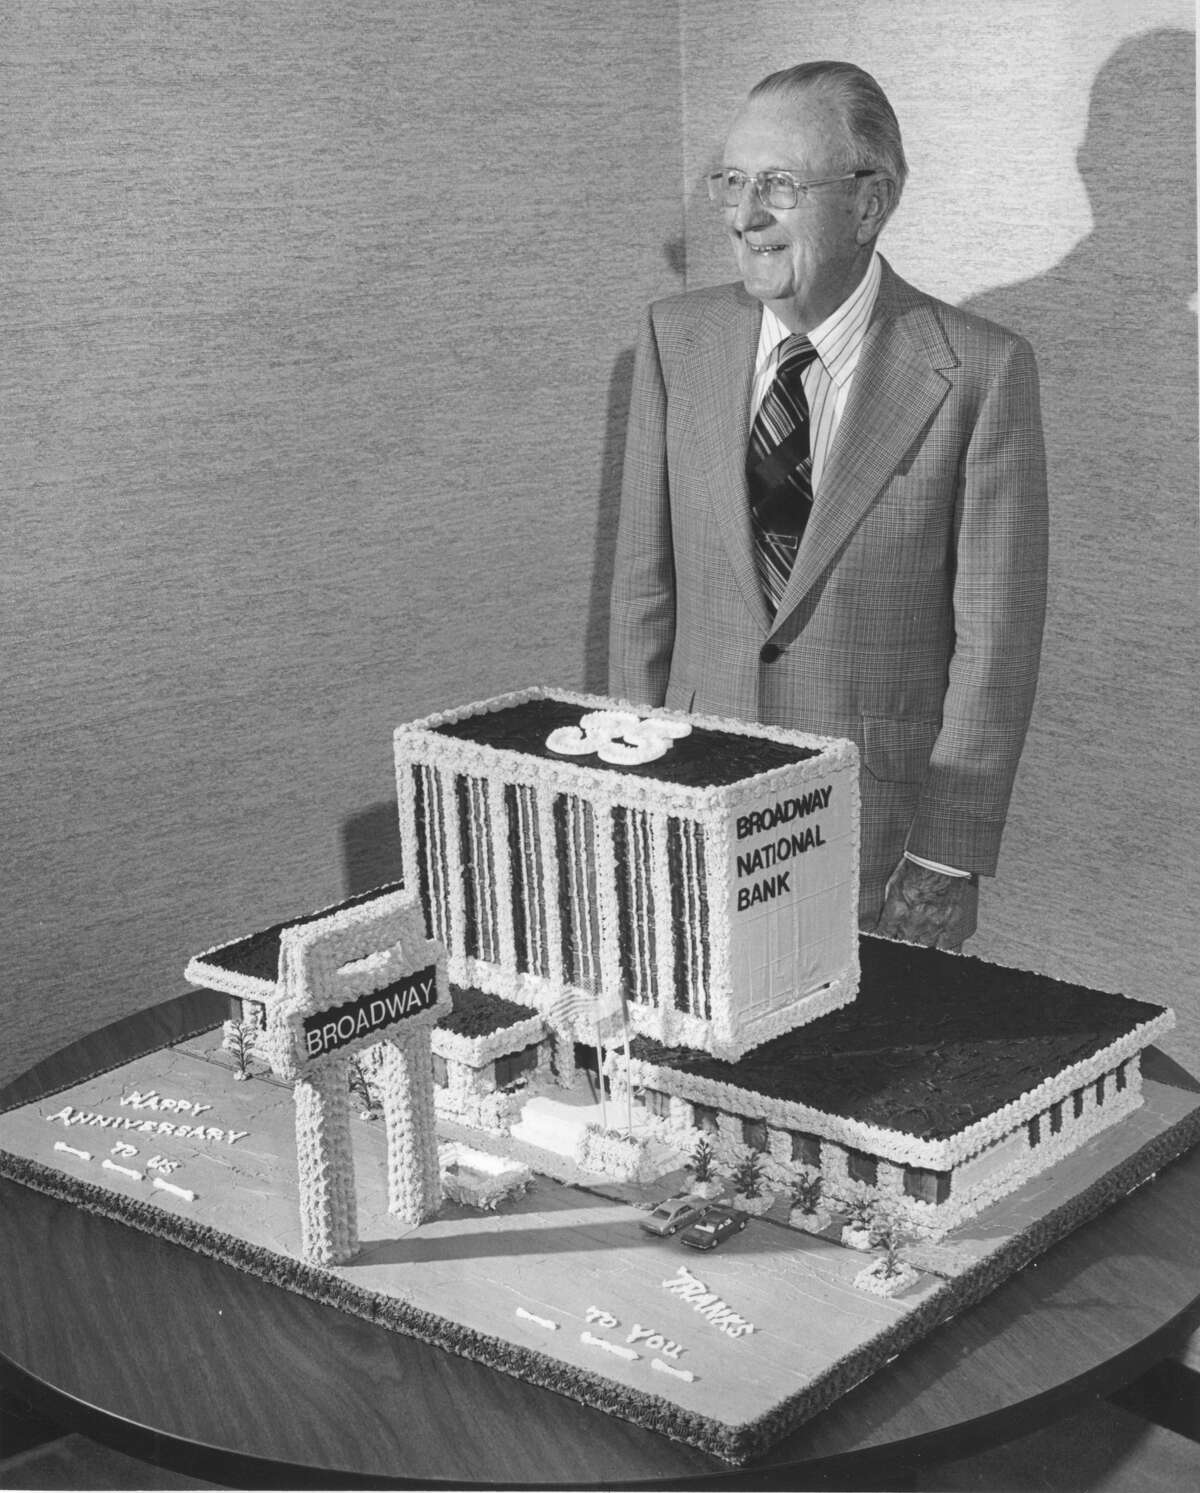 Col. C. E. Cheever poses near the bank-shaped cake for the Broadway National Bank's 35th anniversary in 1976.